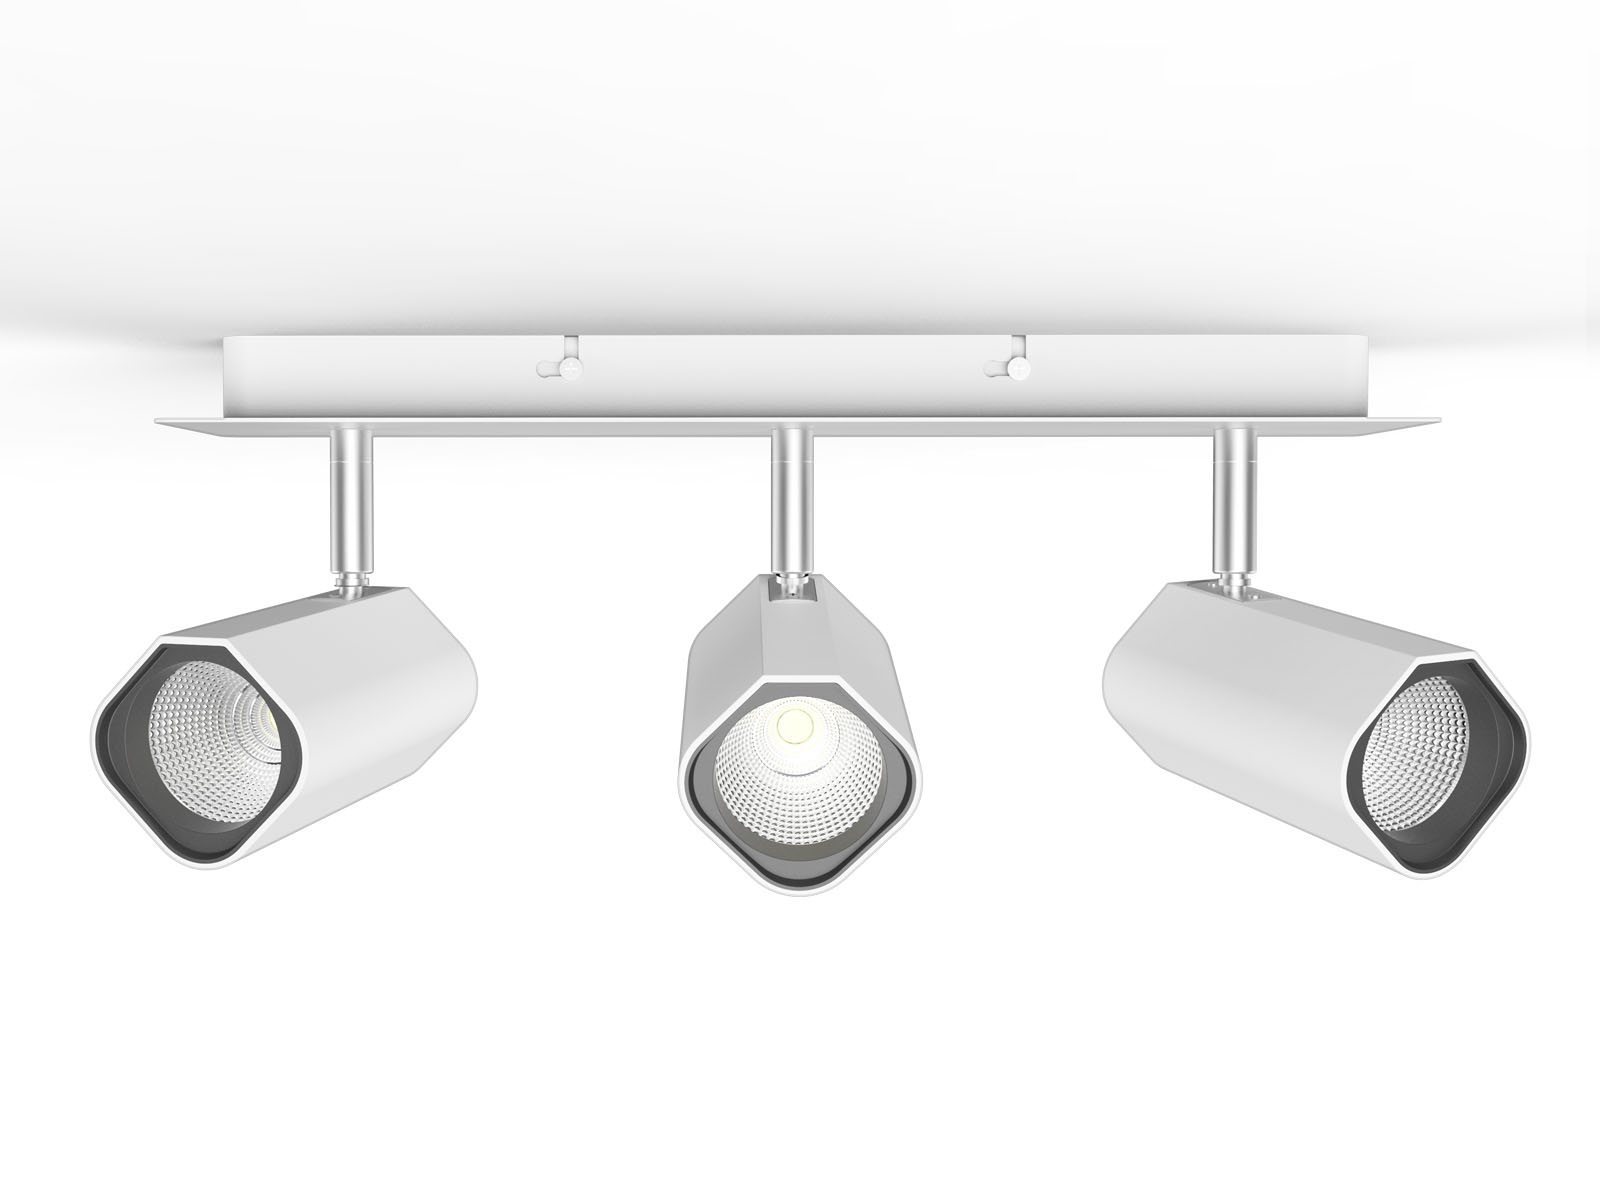 20W TL21 2 Surface Mounted LED Track Light